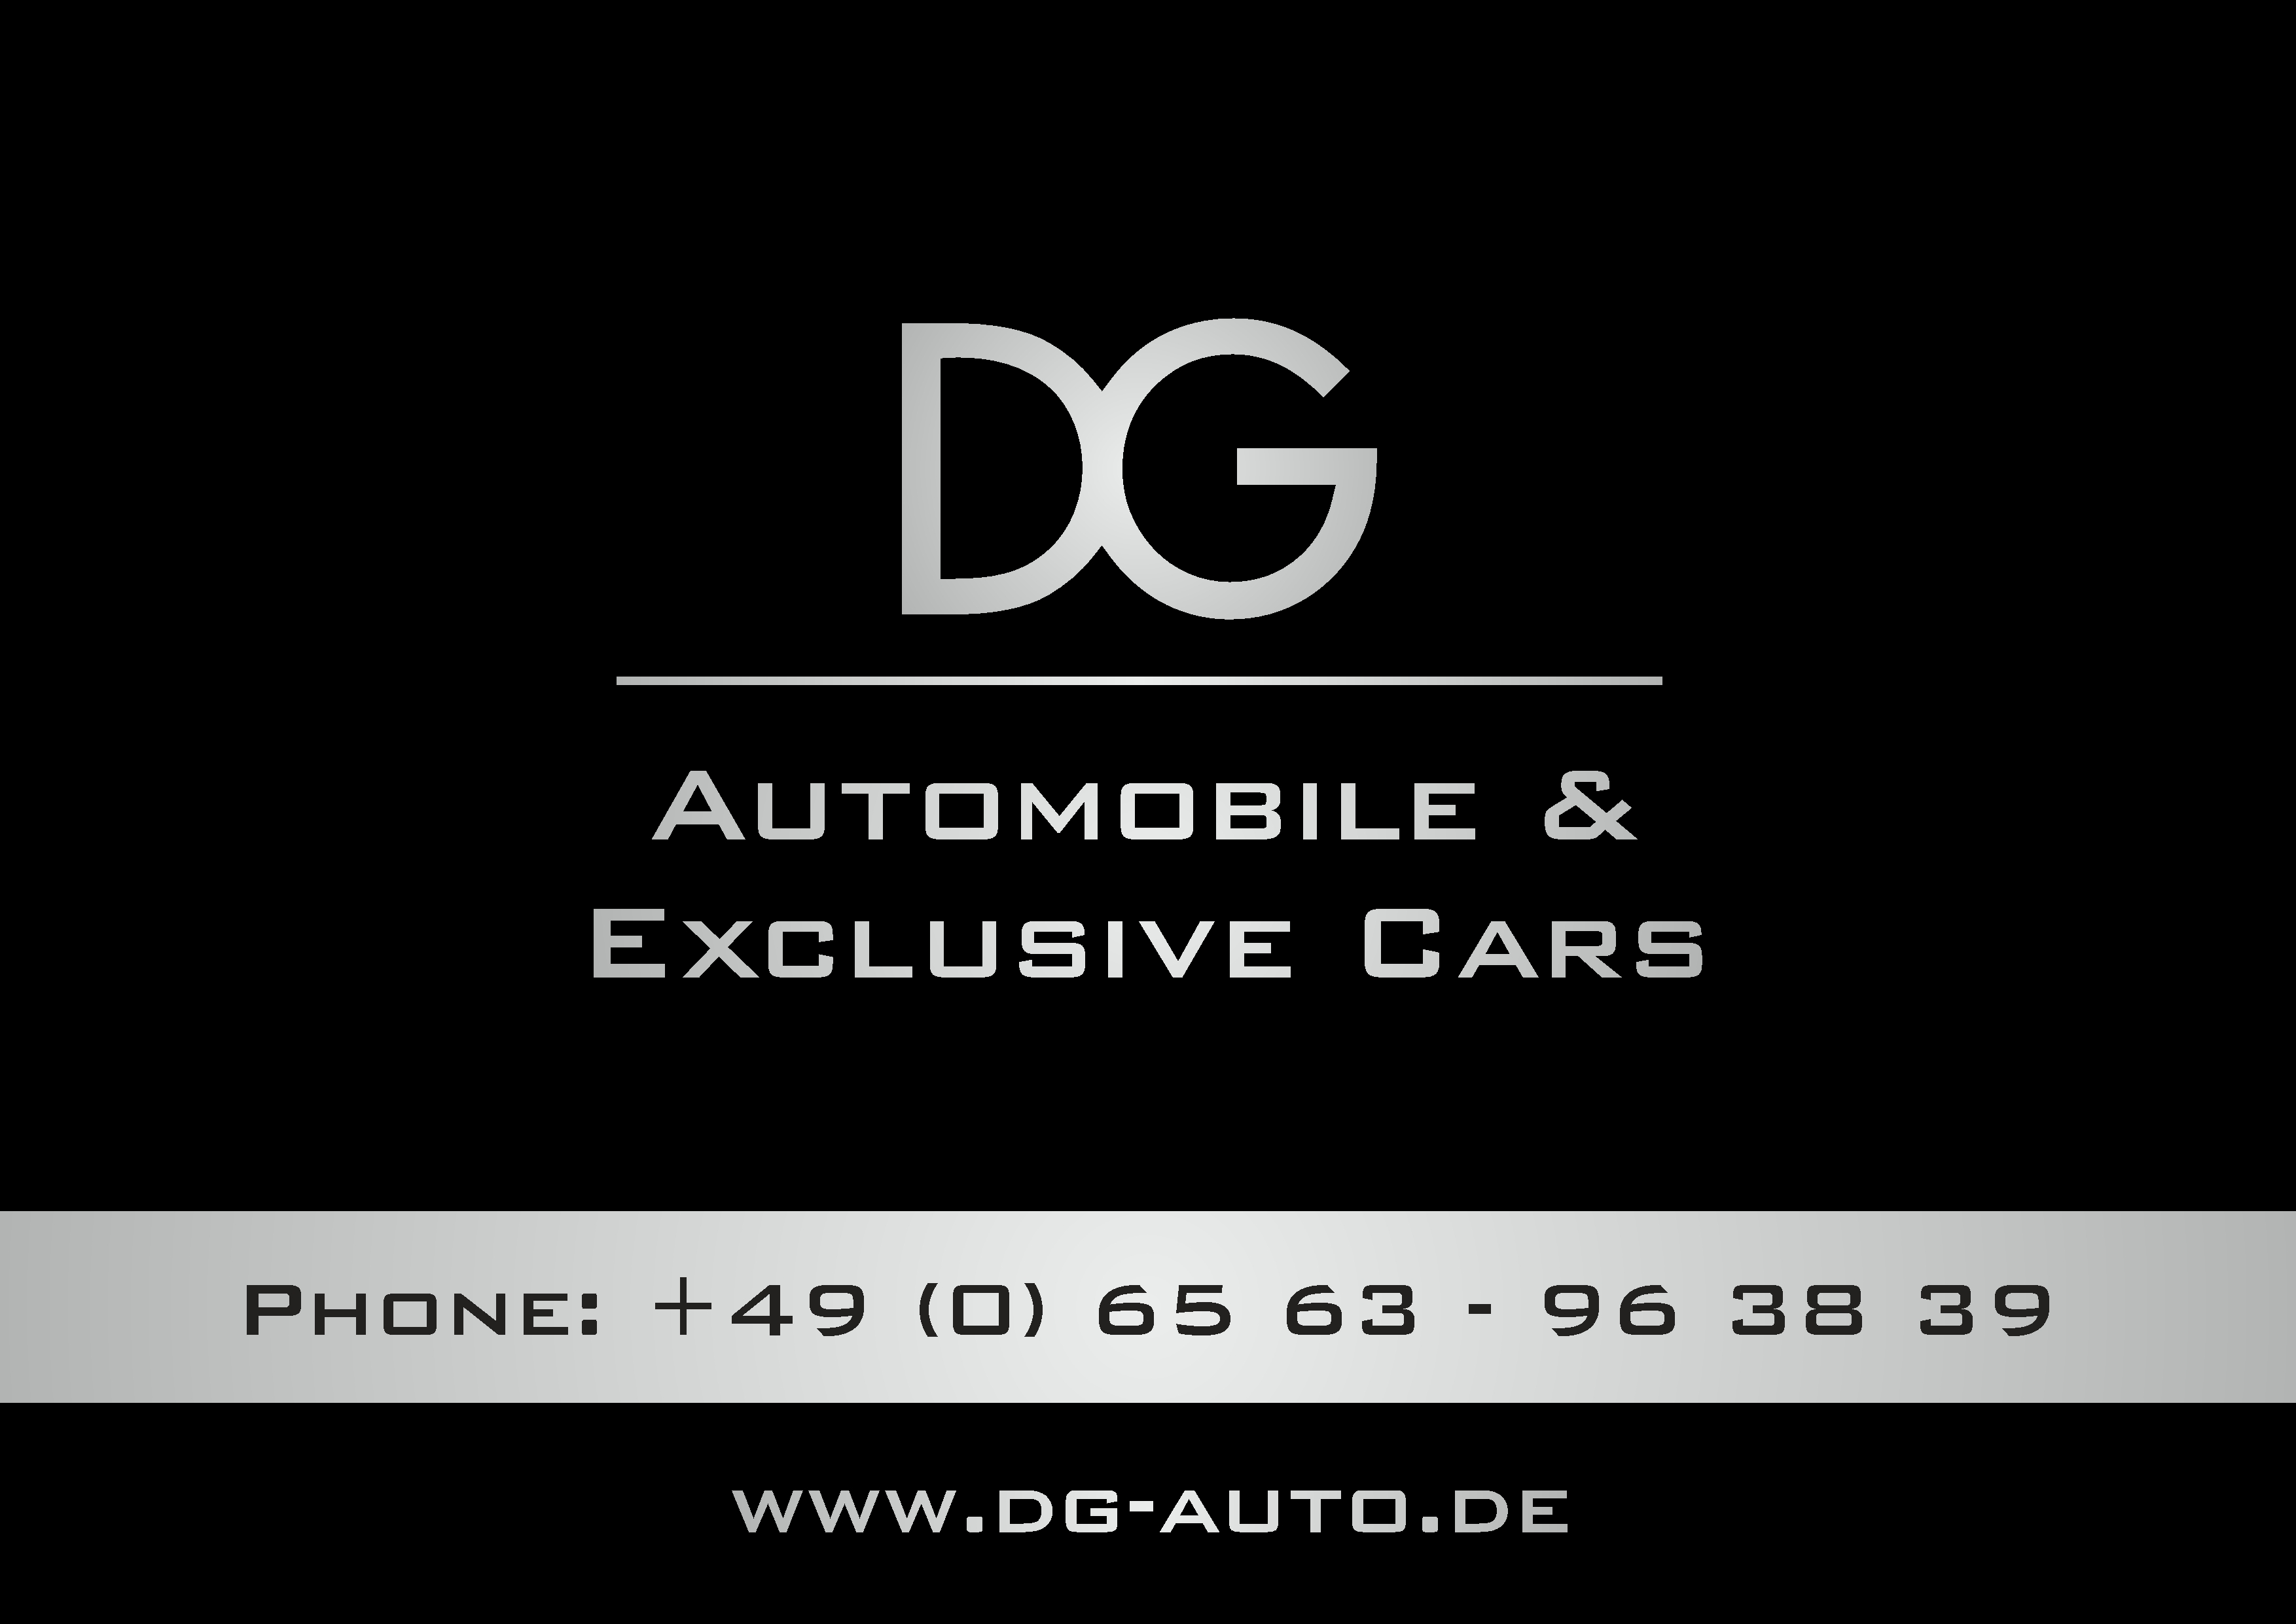 DG Exclusive Cars, Inh. Daniel Godefroid